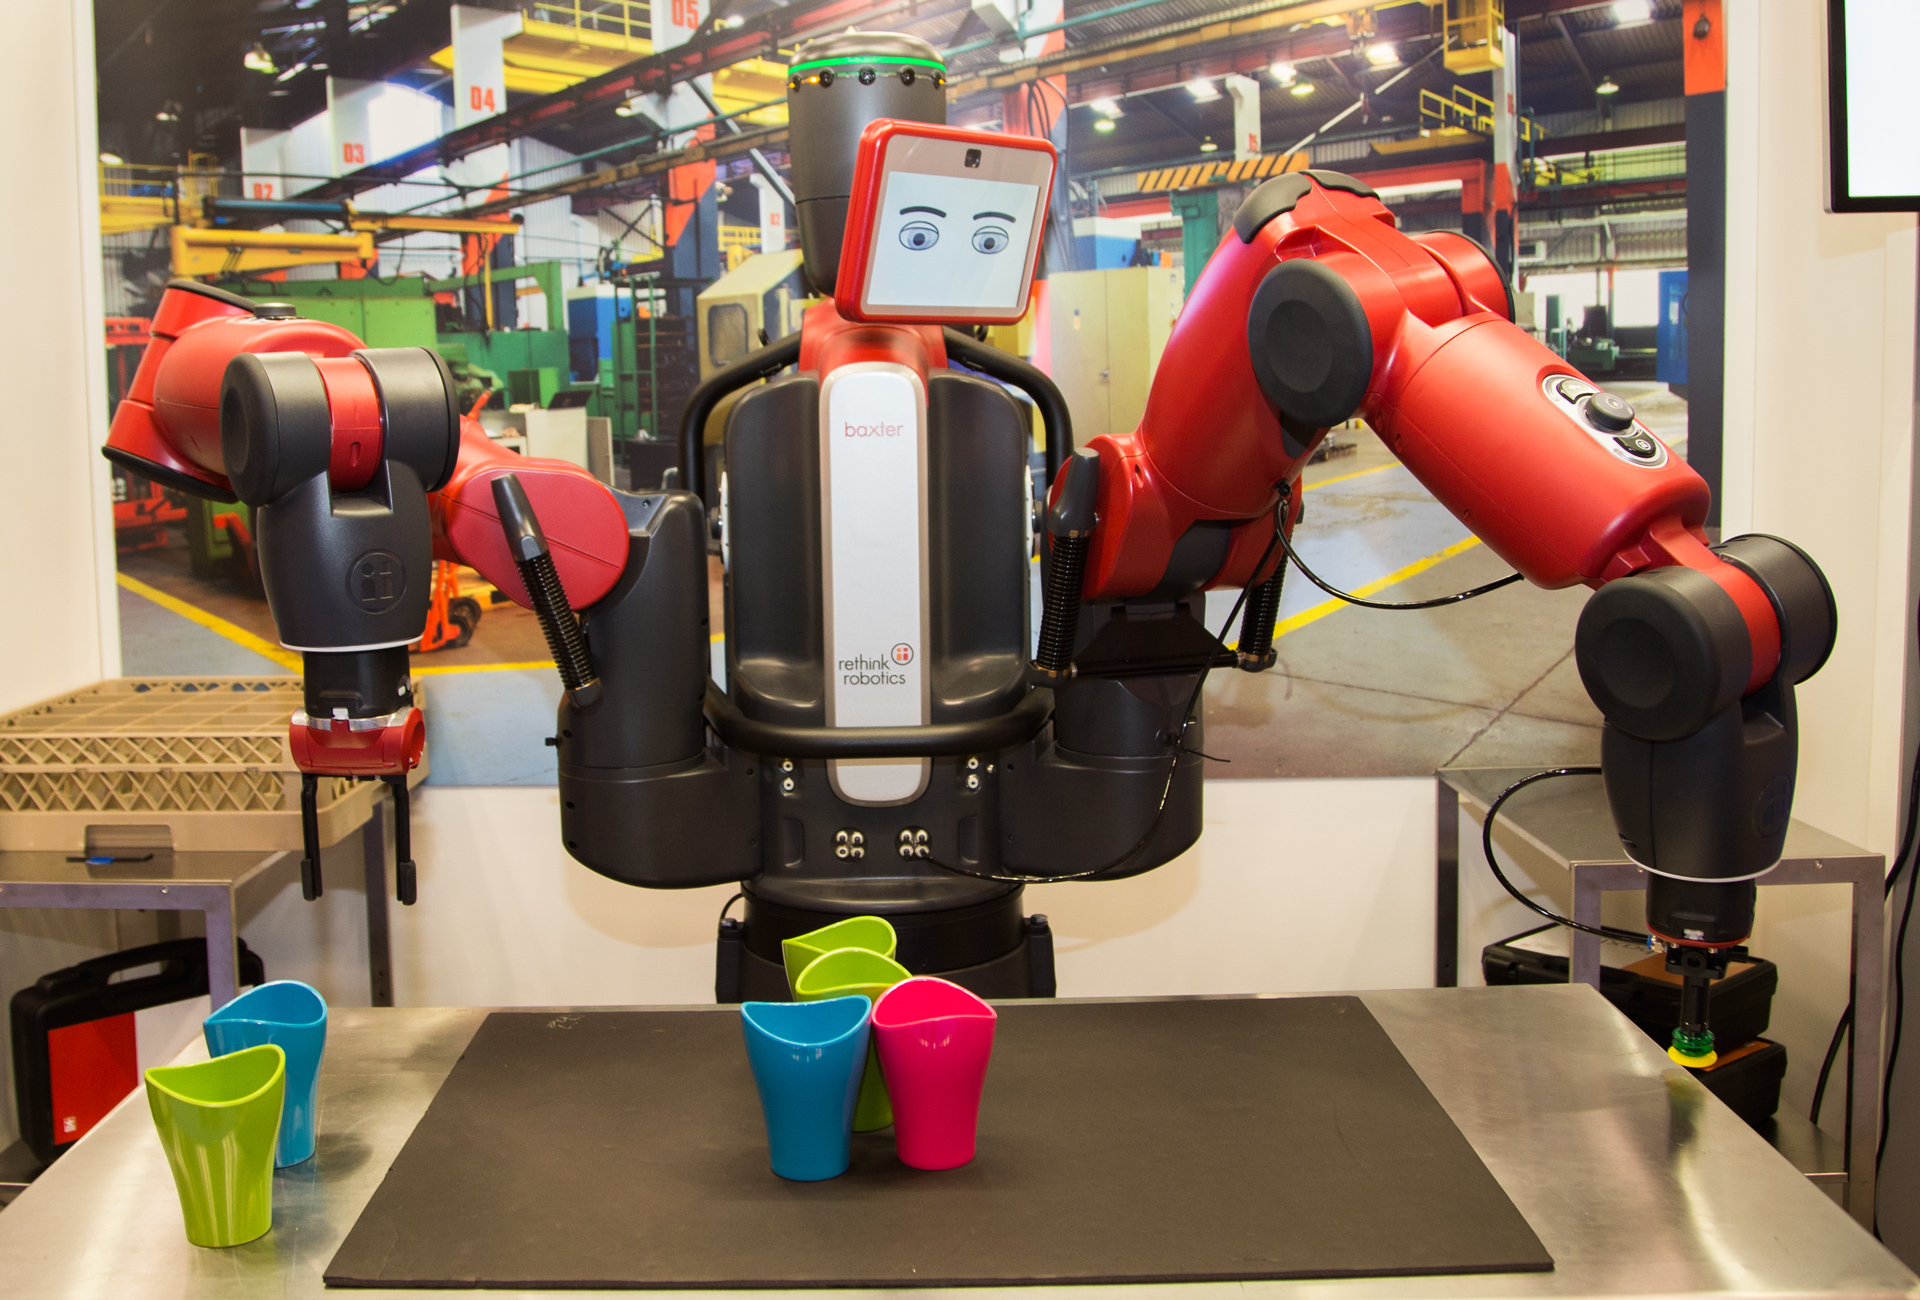 Hands On With Baxter The Factory Robot Of The Future